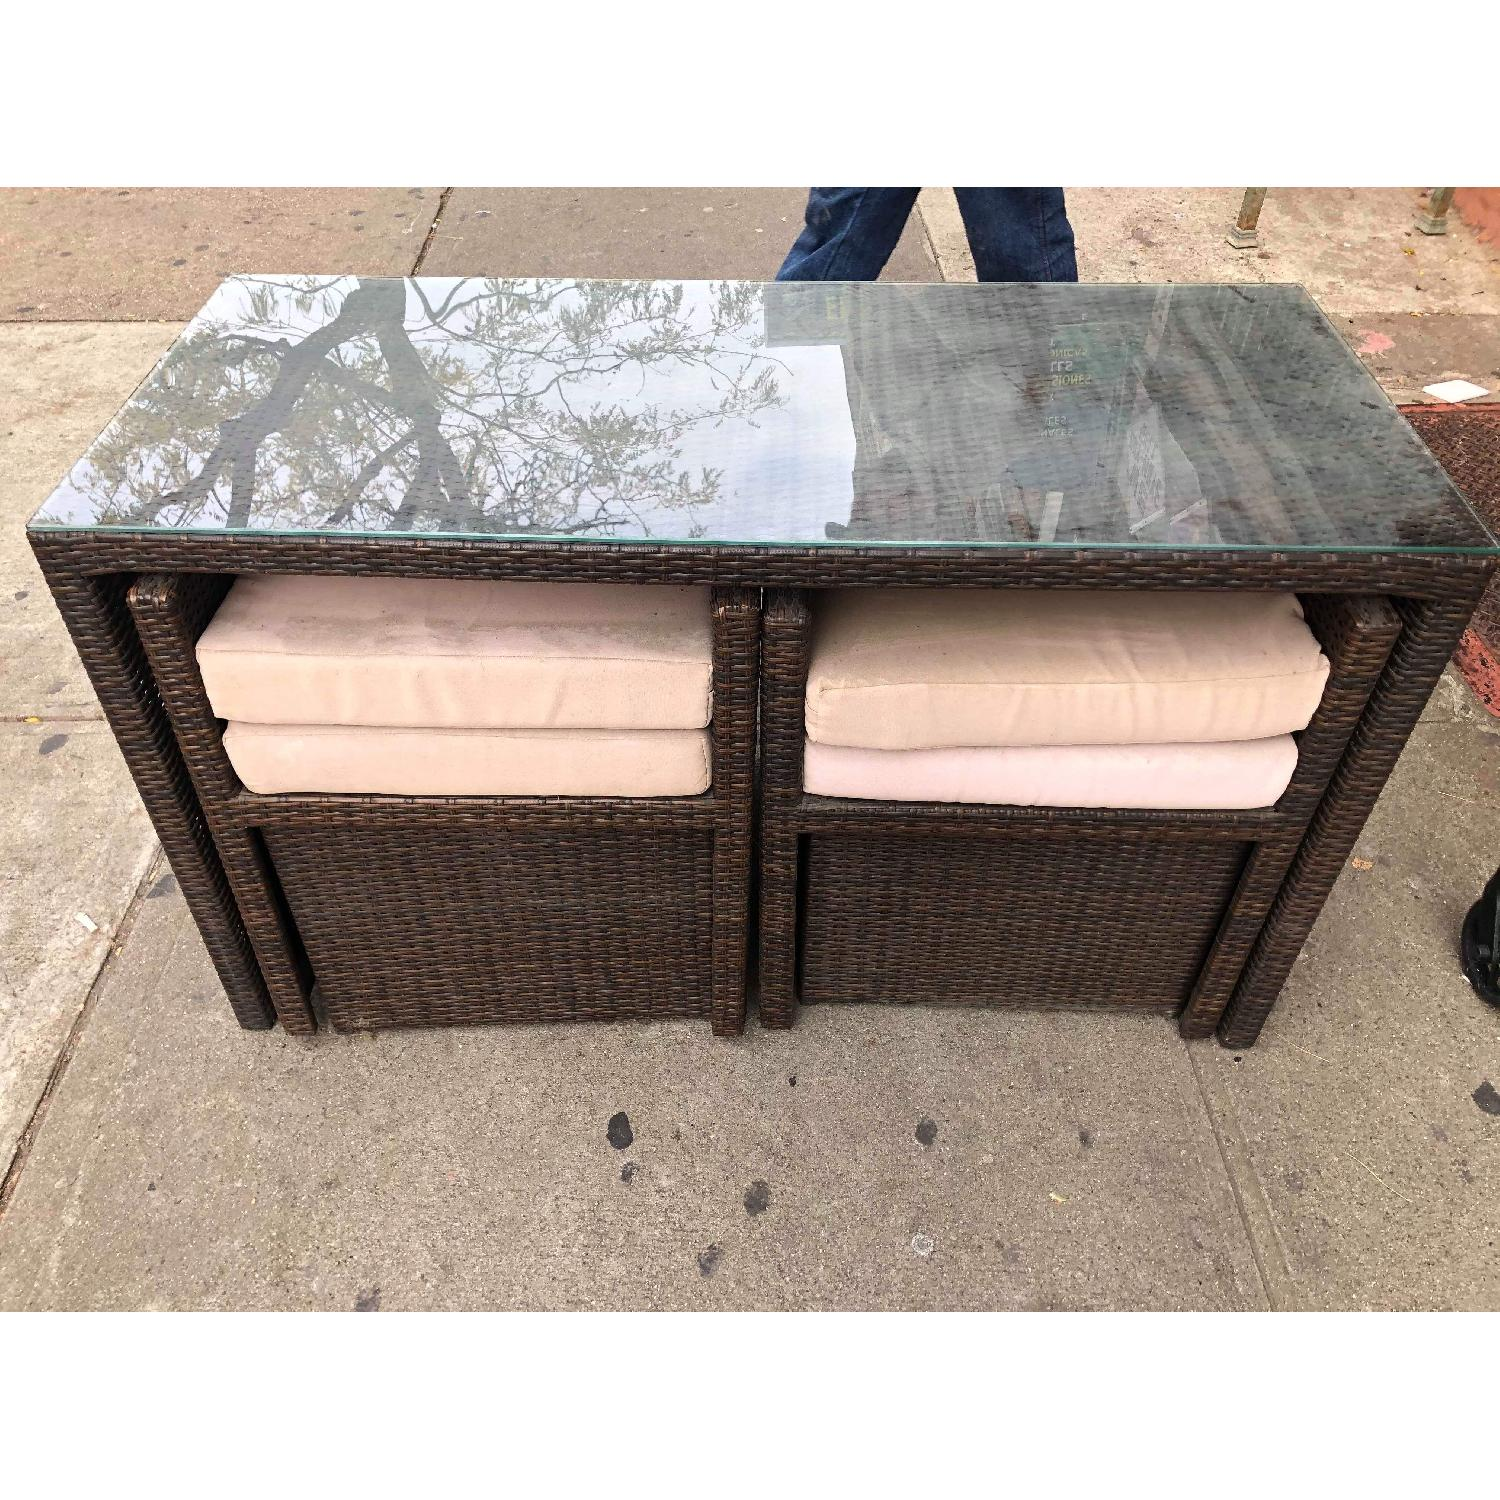 Outdoor Wicker 2 Armchairs w/ Ottomans & Table w/ Glass Top - image-17